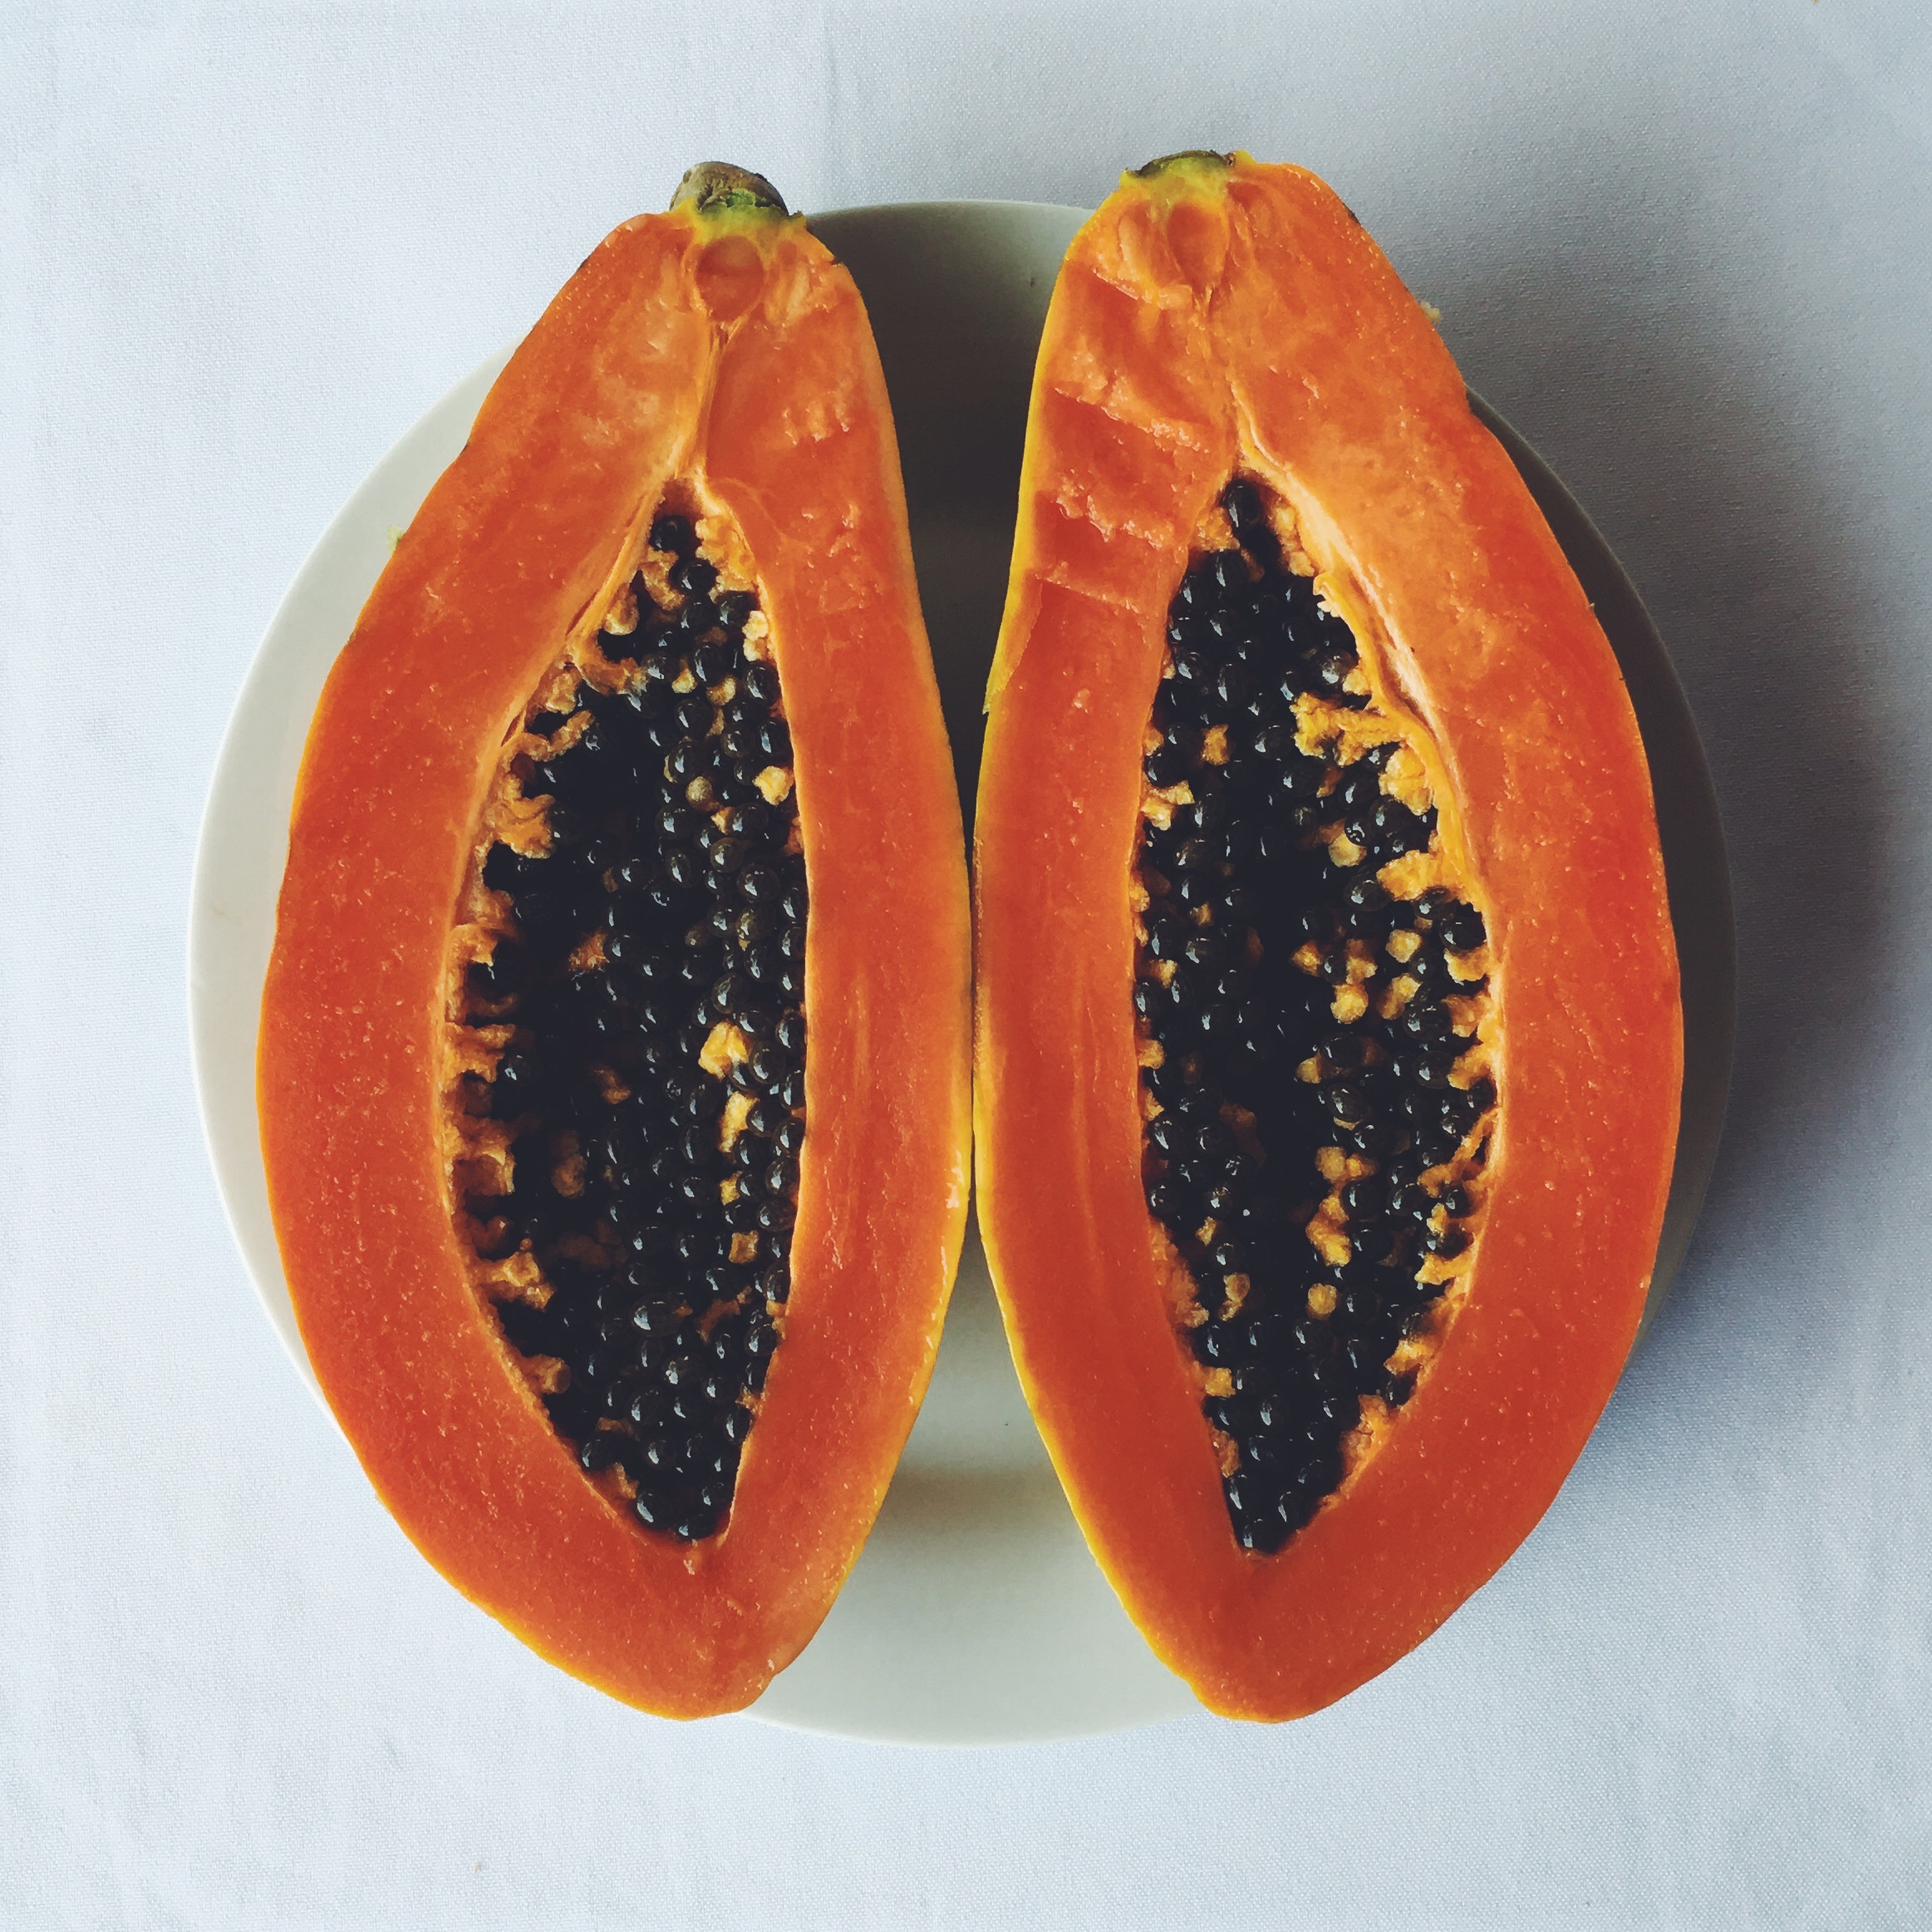 OBELO | Papaya